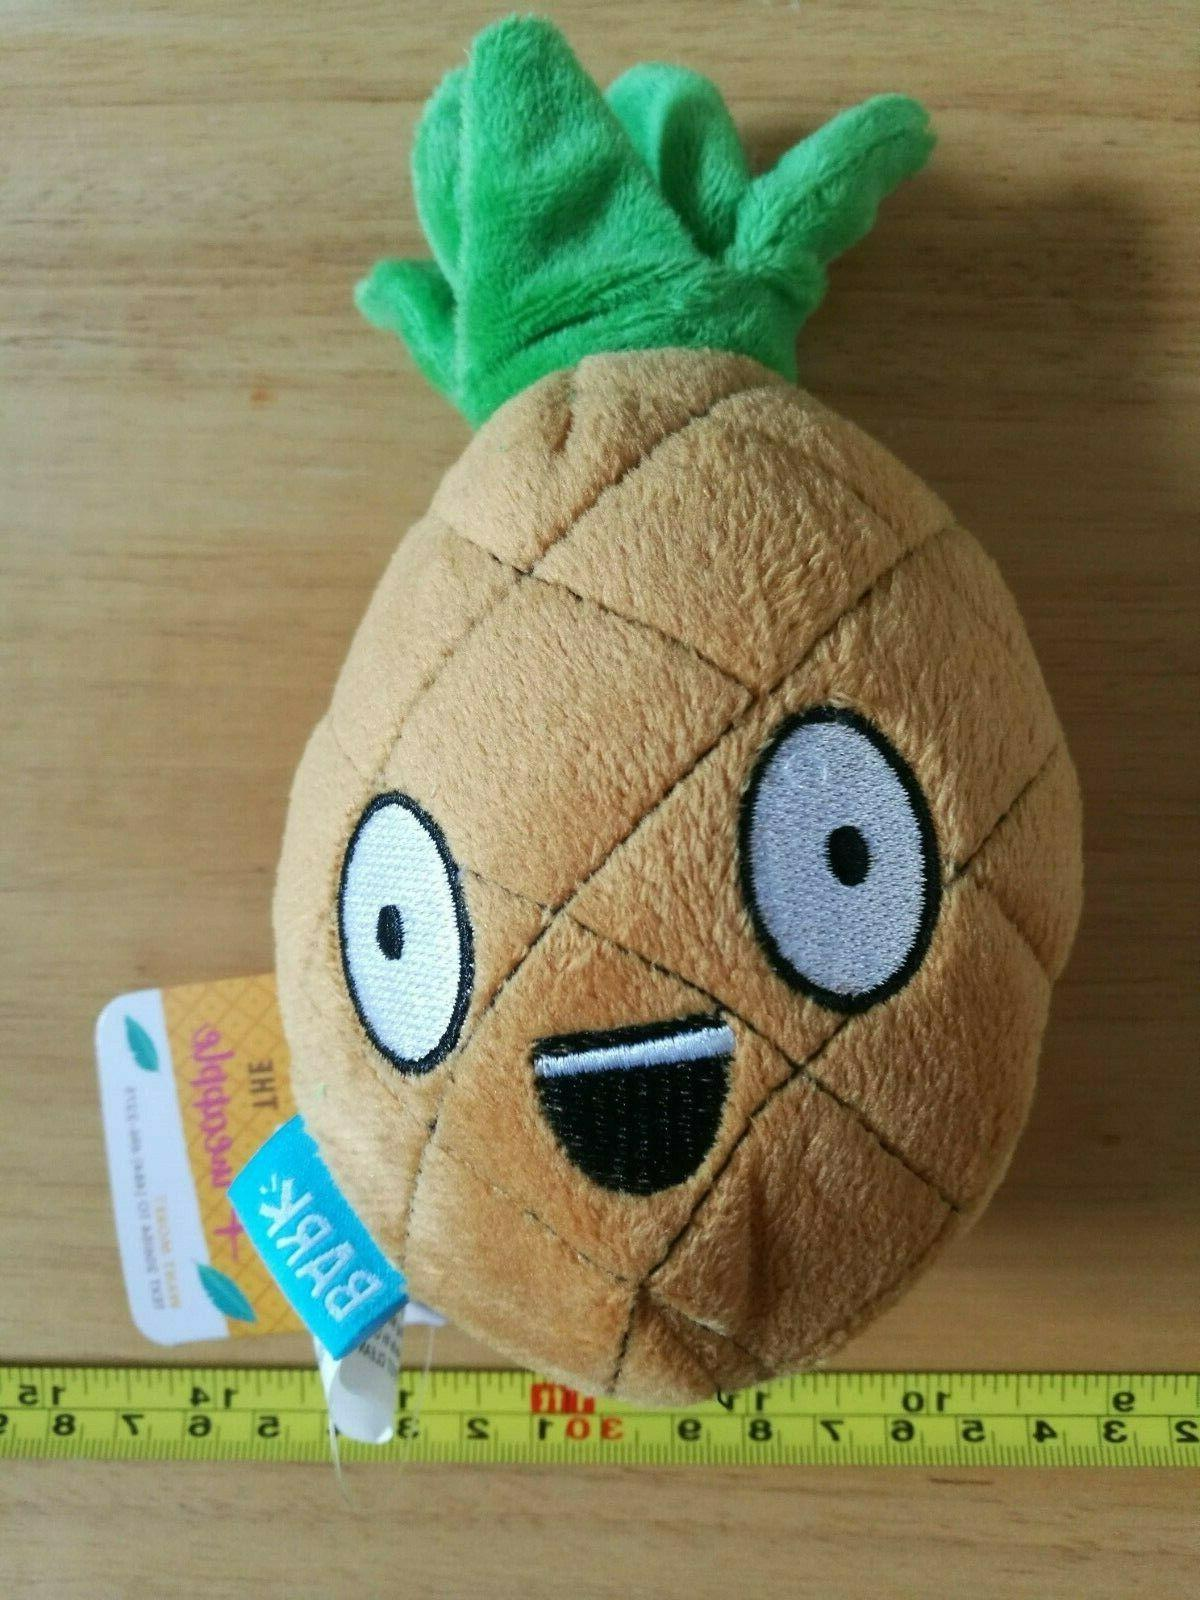 penny the pineapple squeaker plush dog toy